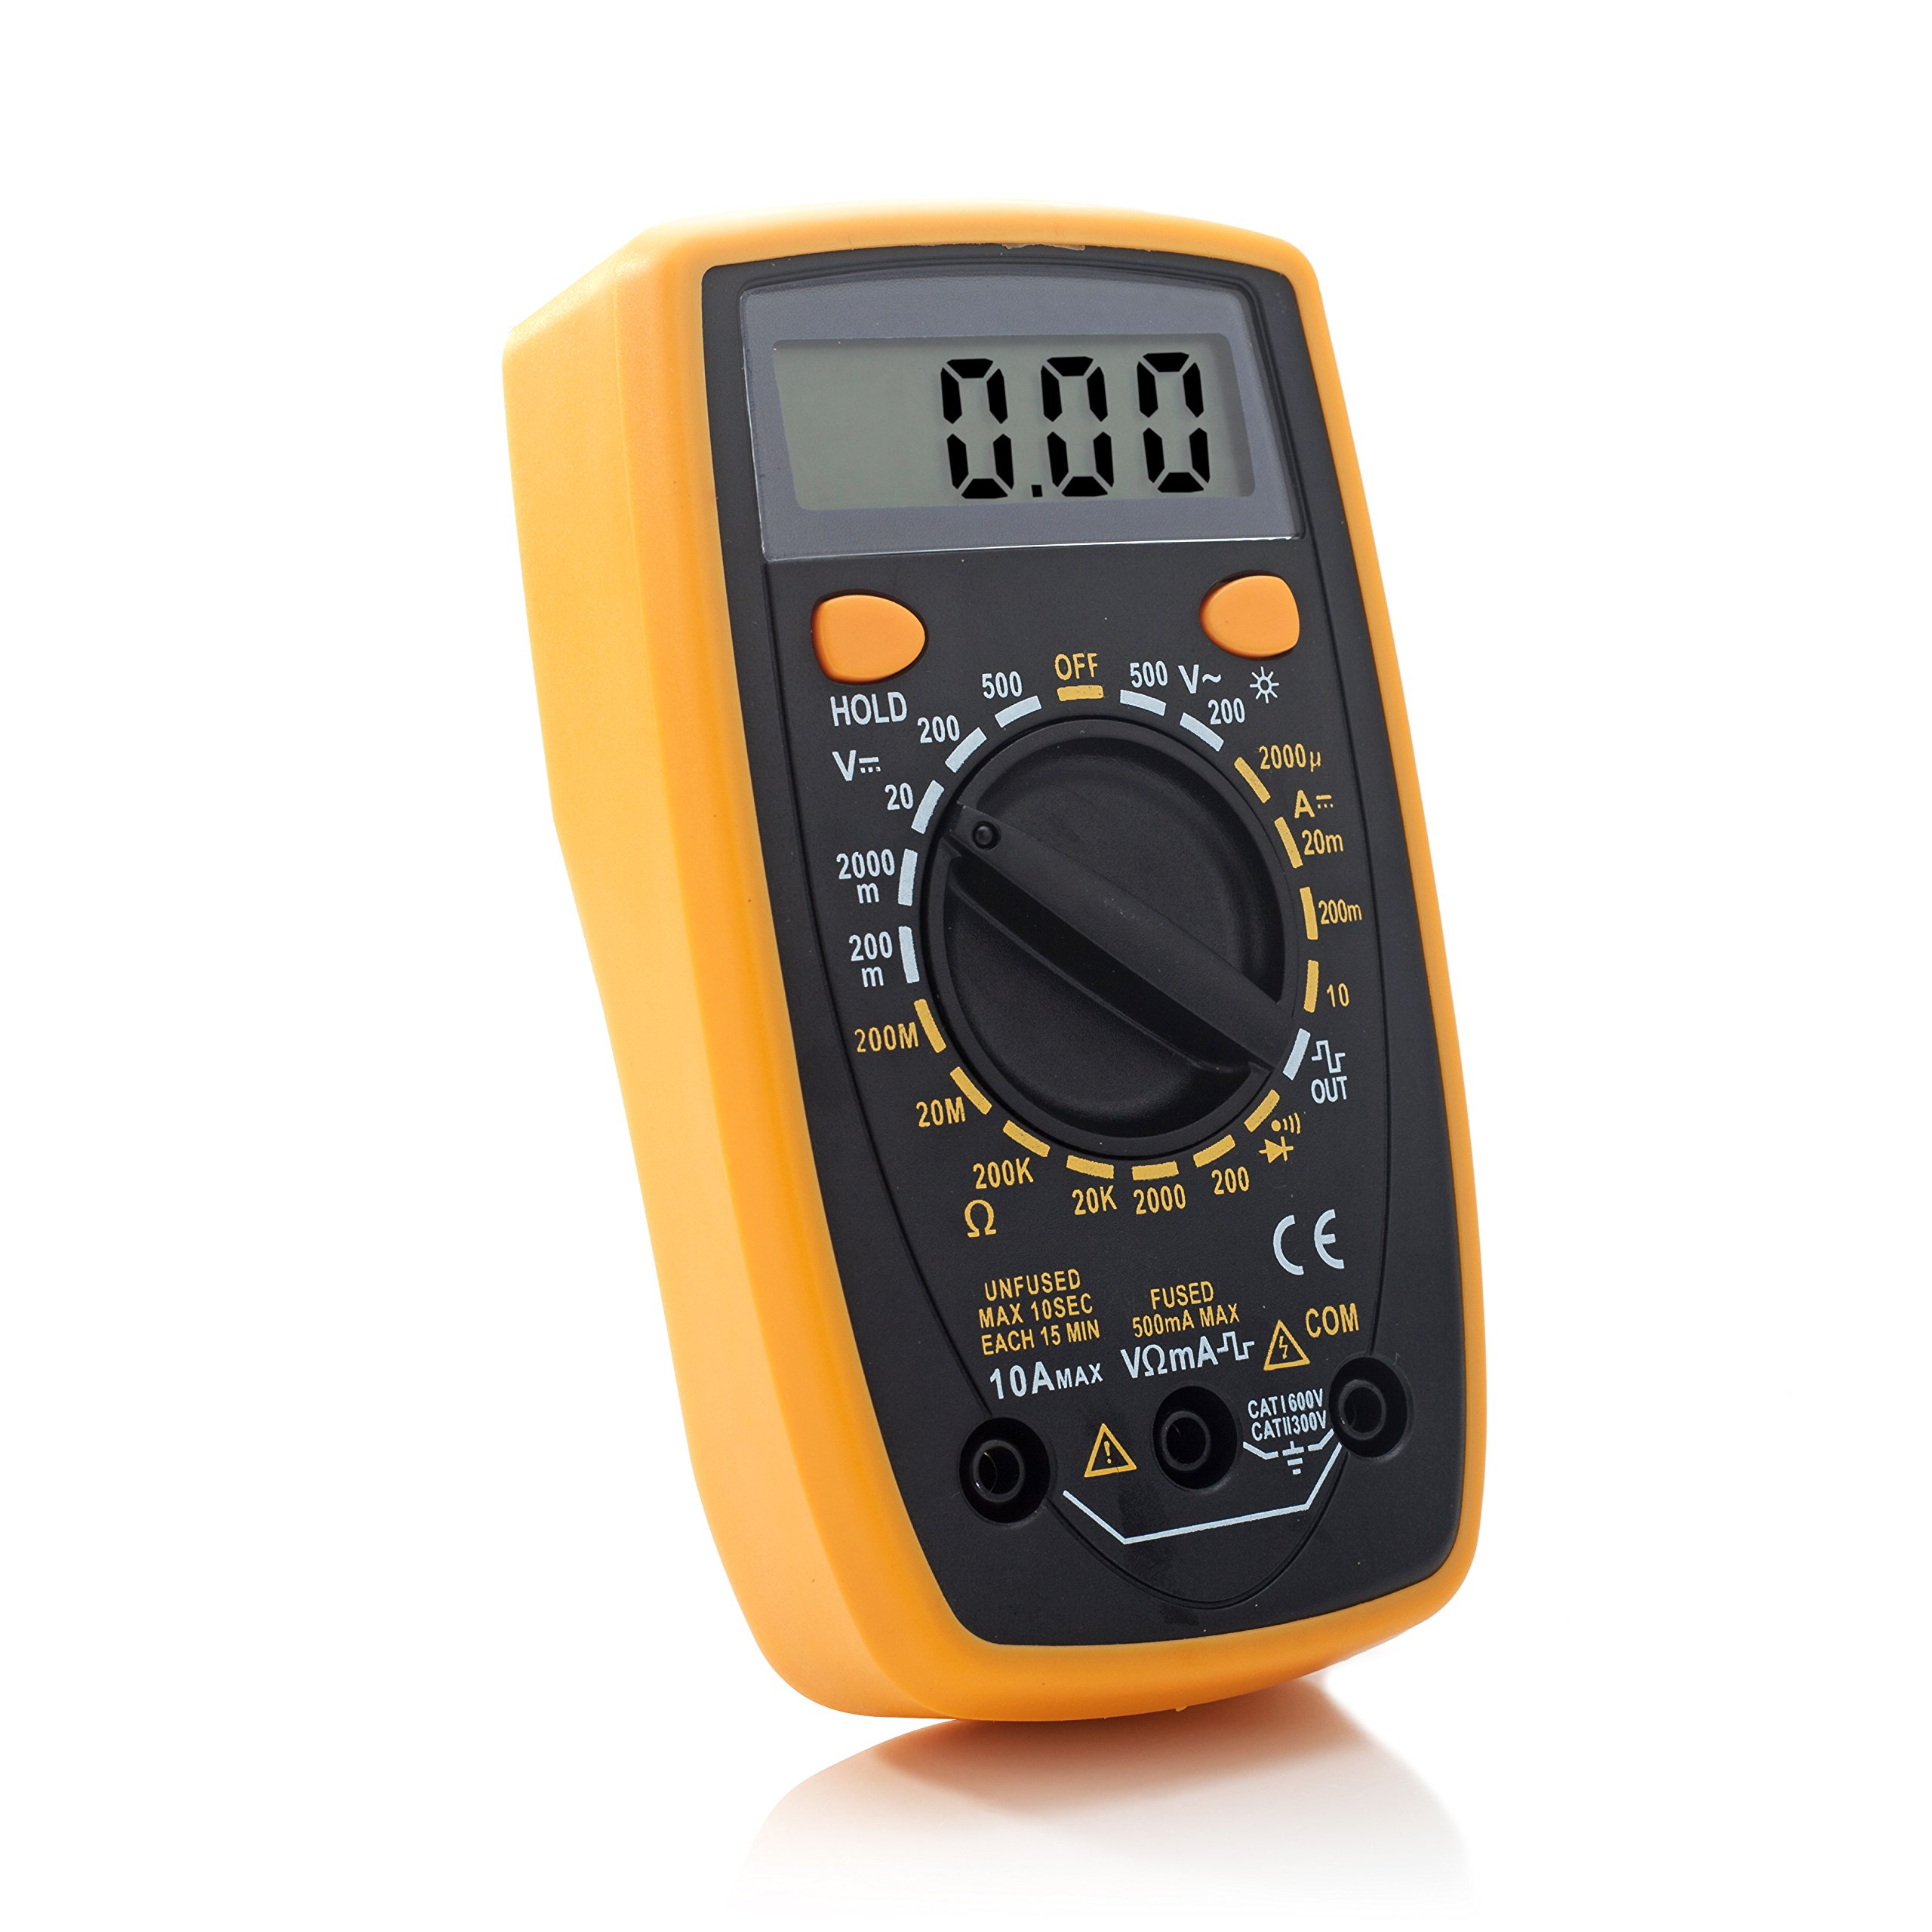 Liger Digital Multimeter, AC/DC, Current, Voltage, Resistance Digital Meter/Tester with Ohm Volt Amp & Diode Test, for Household Outlets, Fuses, Vehicle Battery, Charging System, Automotive Circuits